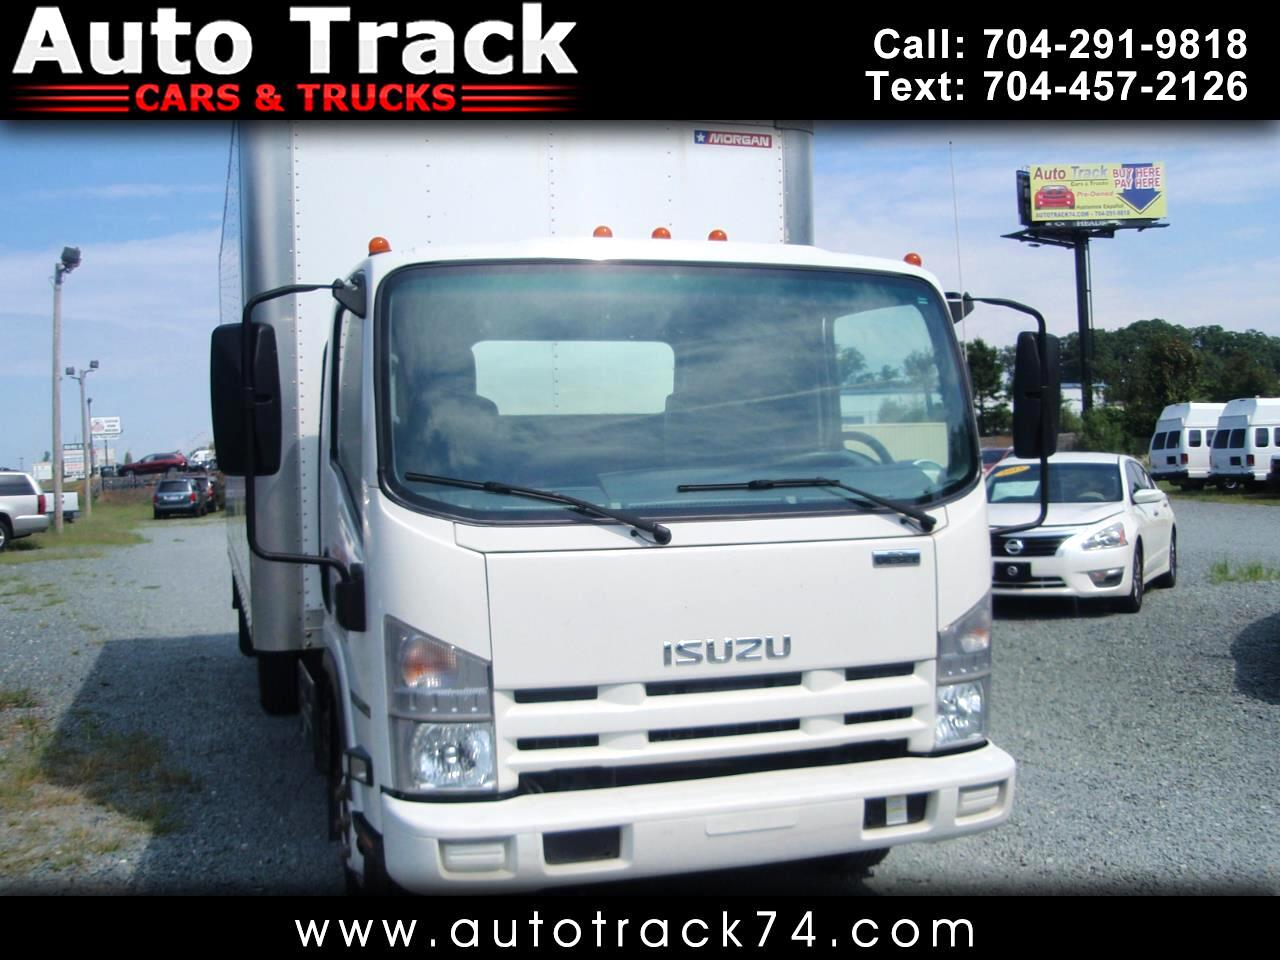 2015 Isuzu NPR DSL REG AT 109